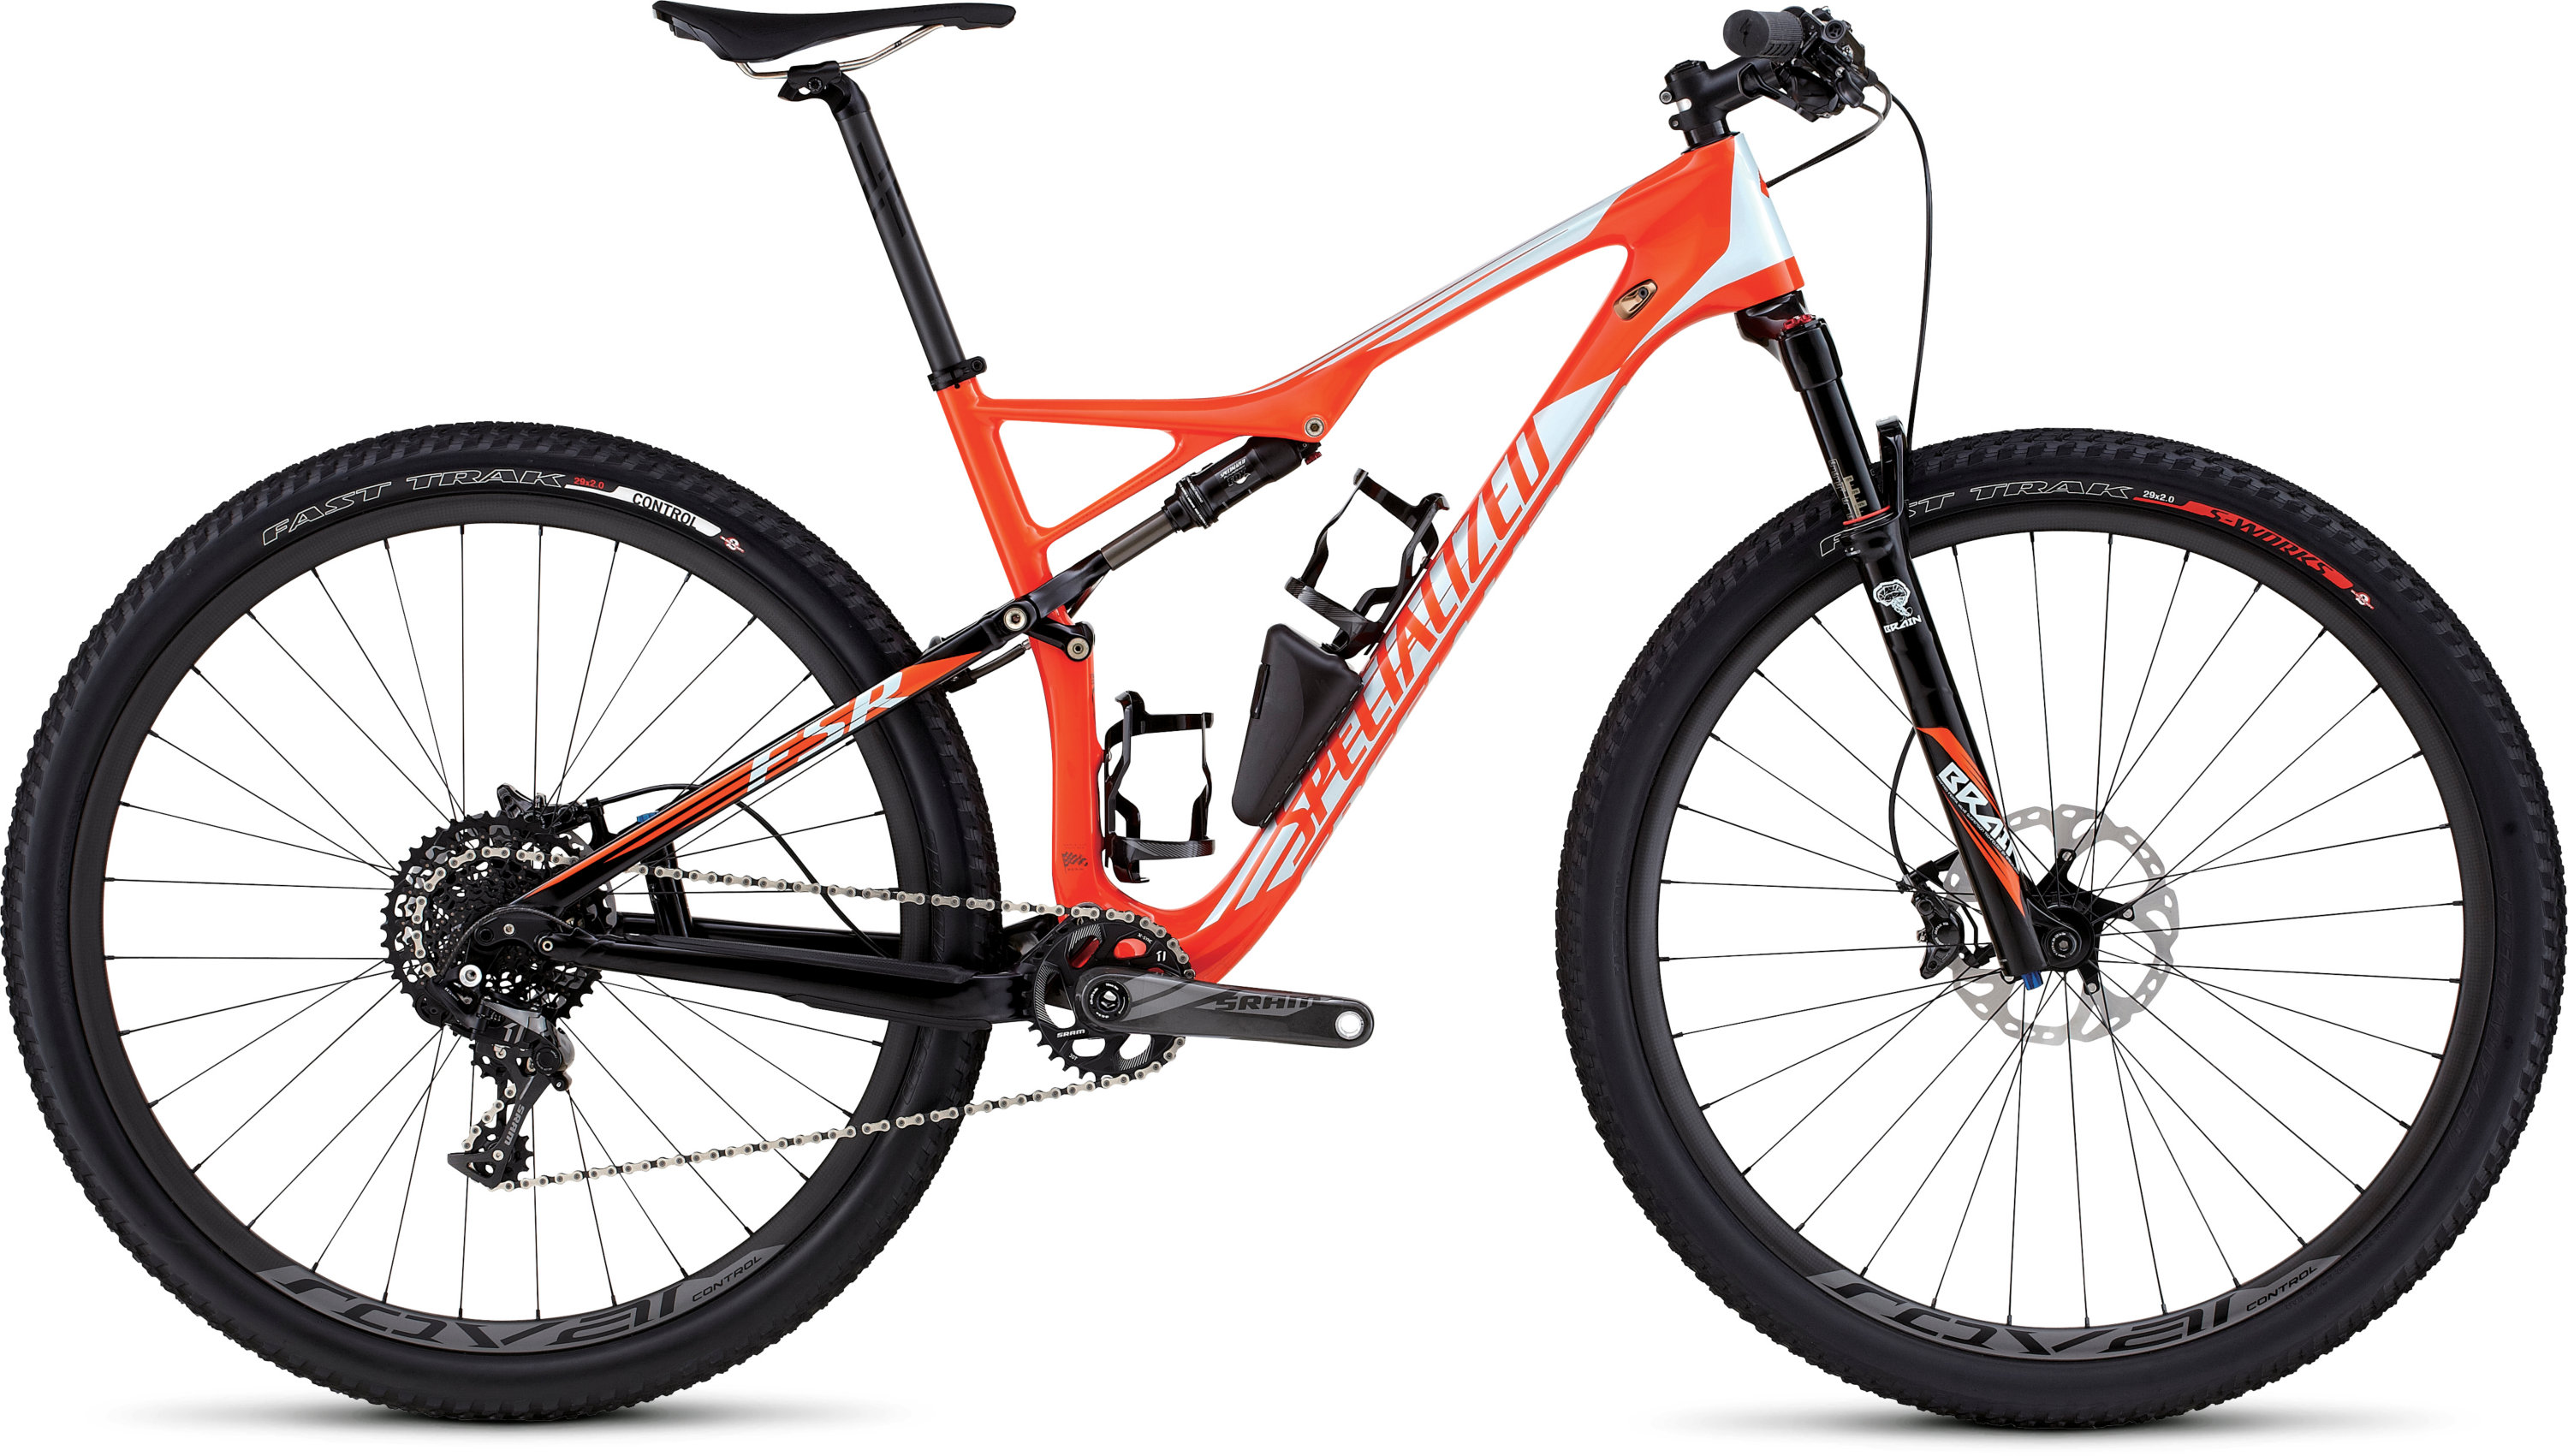 SPECIALIZED EPIC FSR EXPERT CARBON WC 29 MXORG/BBYBLU XL - SPECIALIZED EPIC FSR EXPERT CARBON WC 29 MXORG/BBYBLU XL